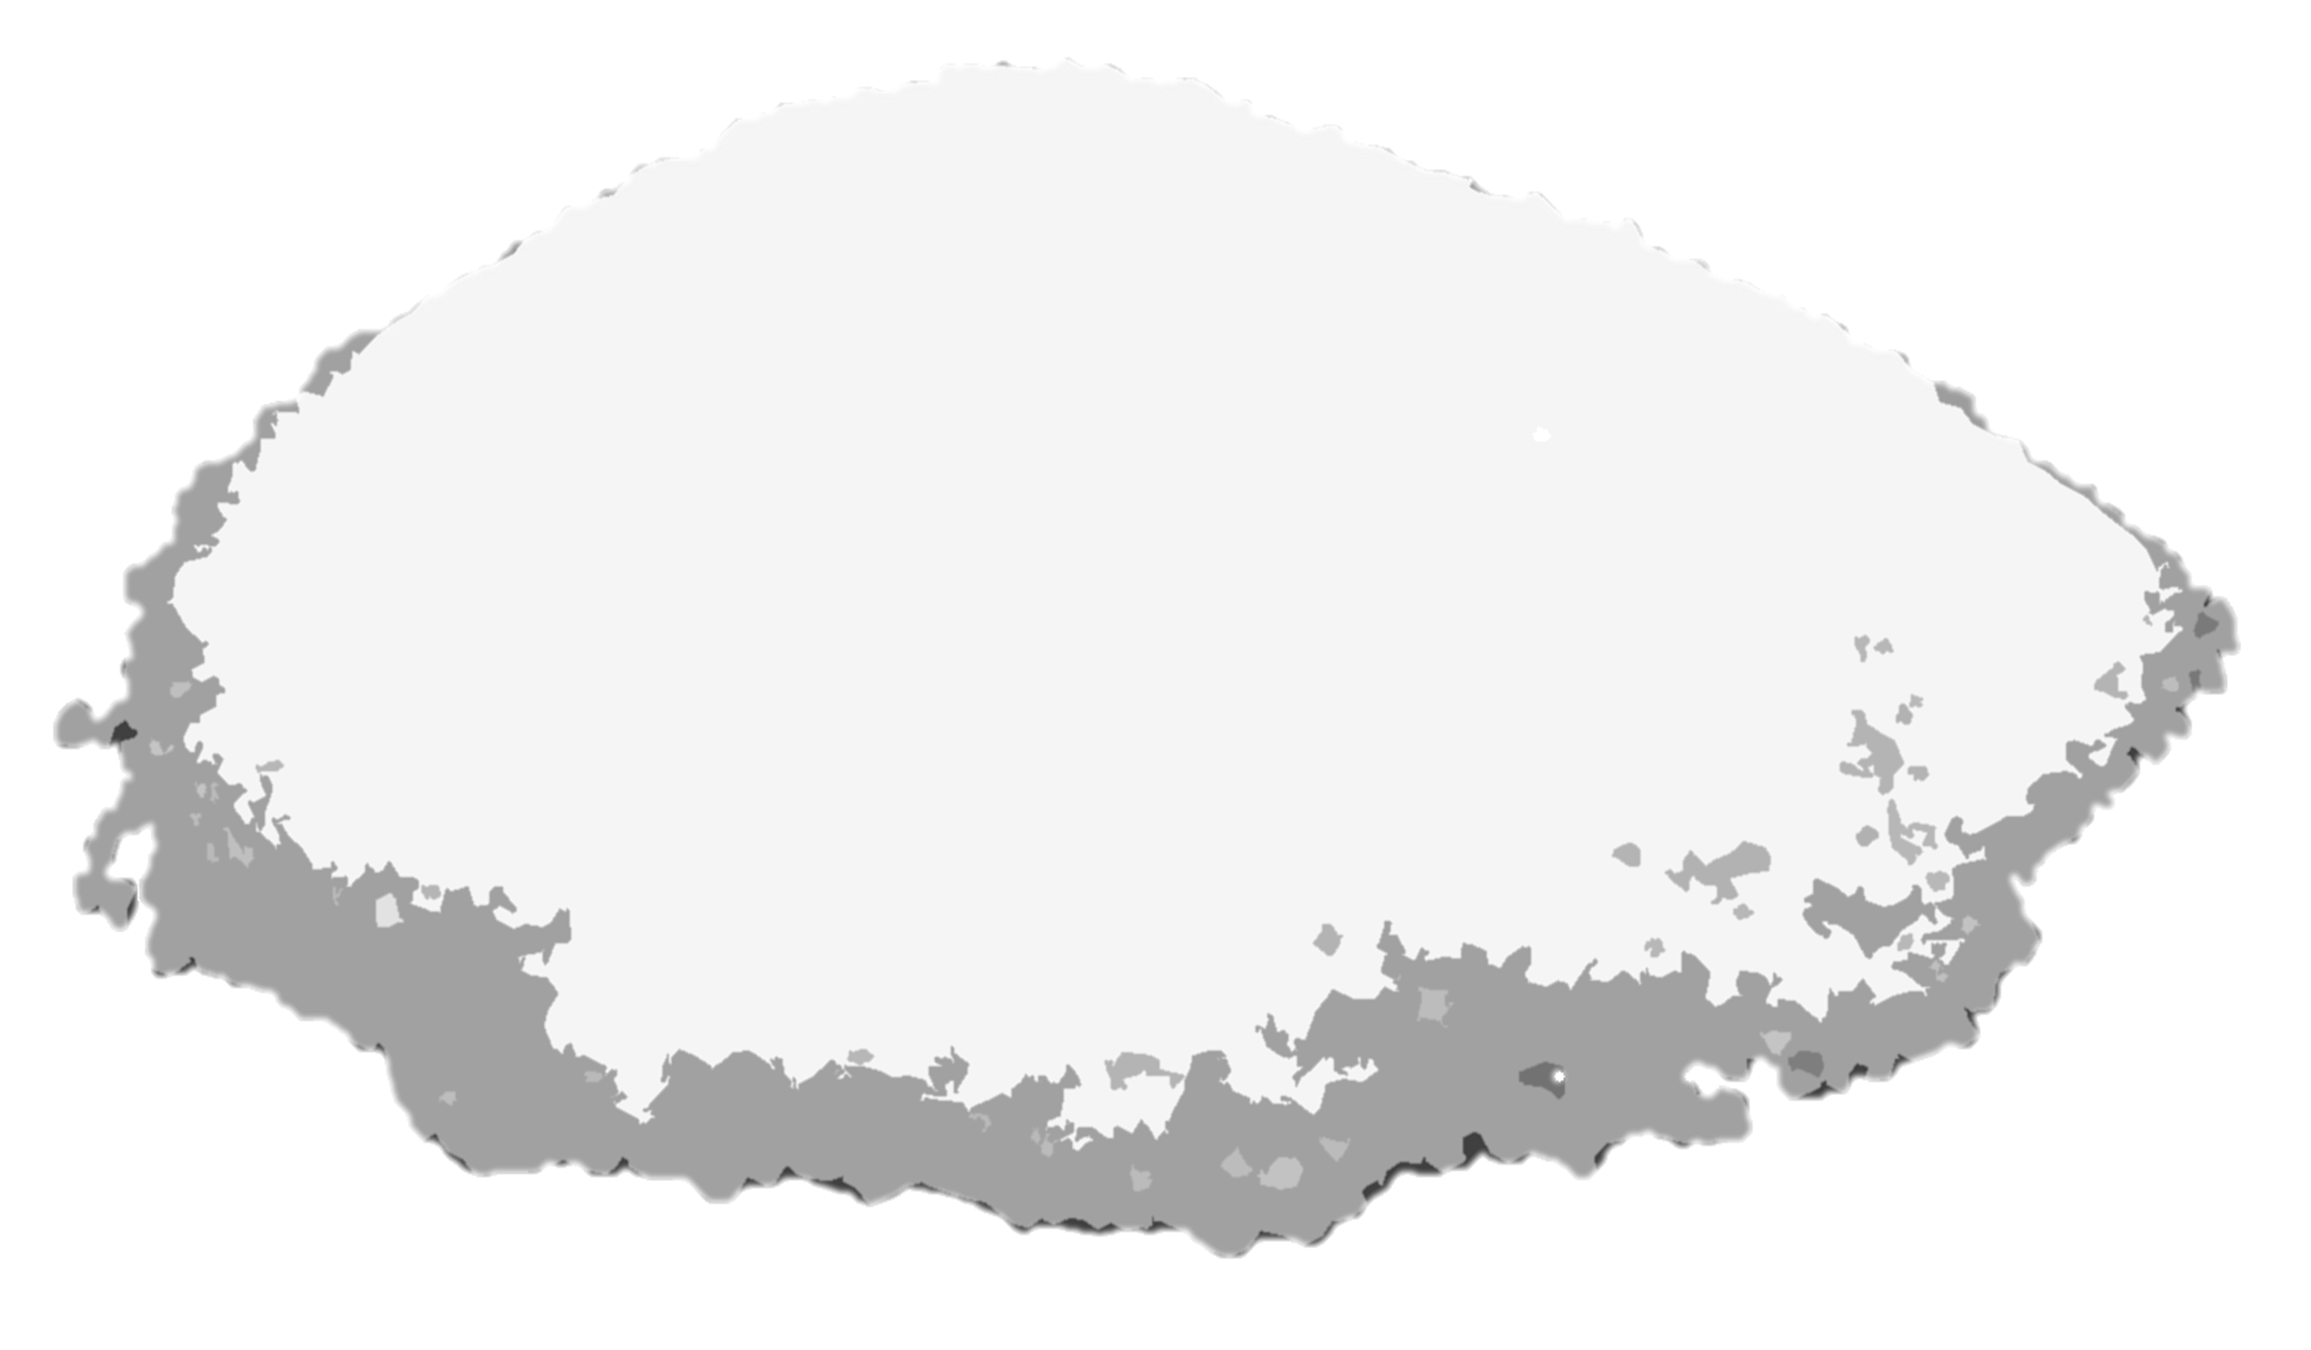 File:Salt-cutout.png - Salt PNG Black And White